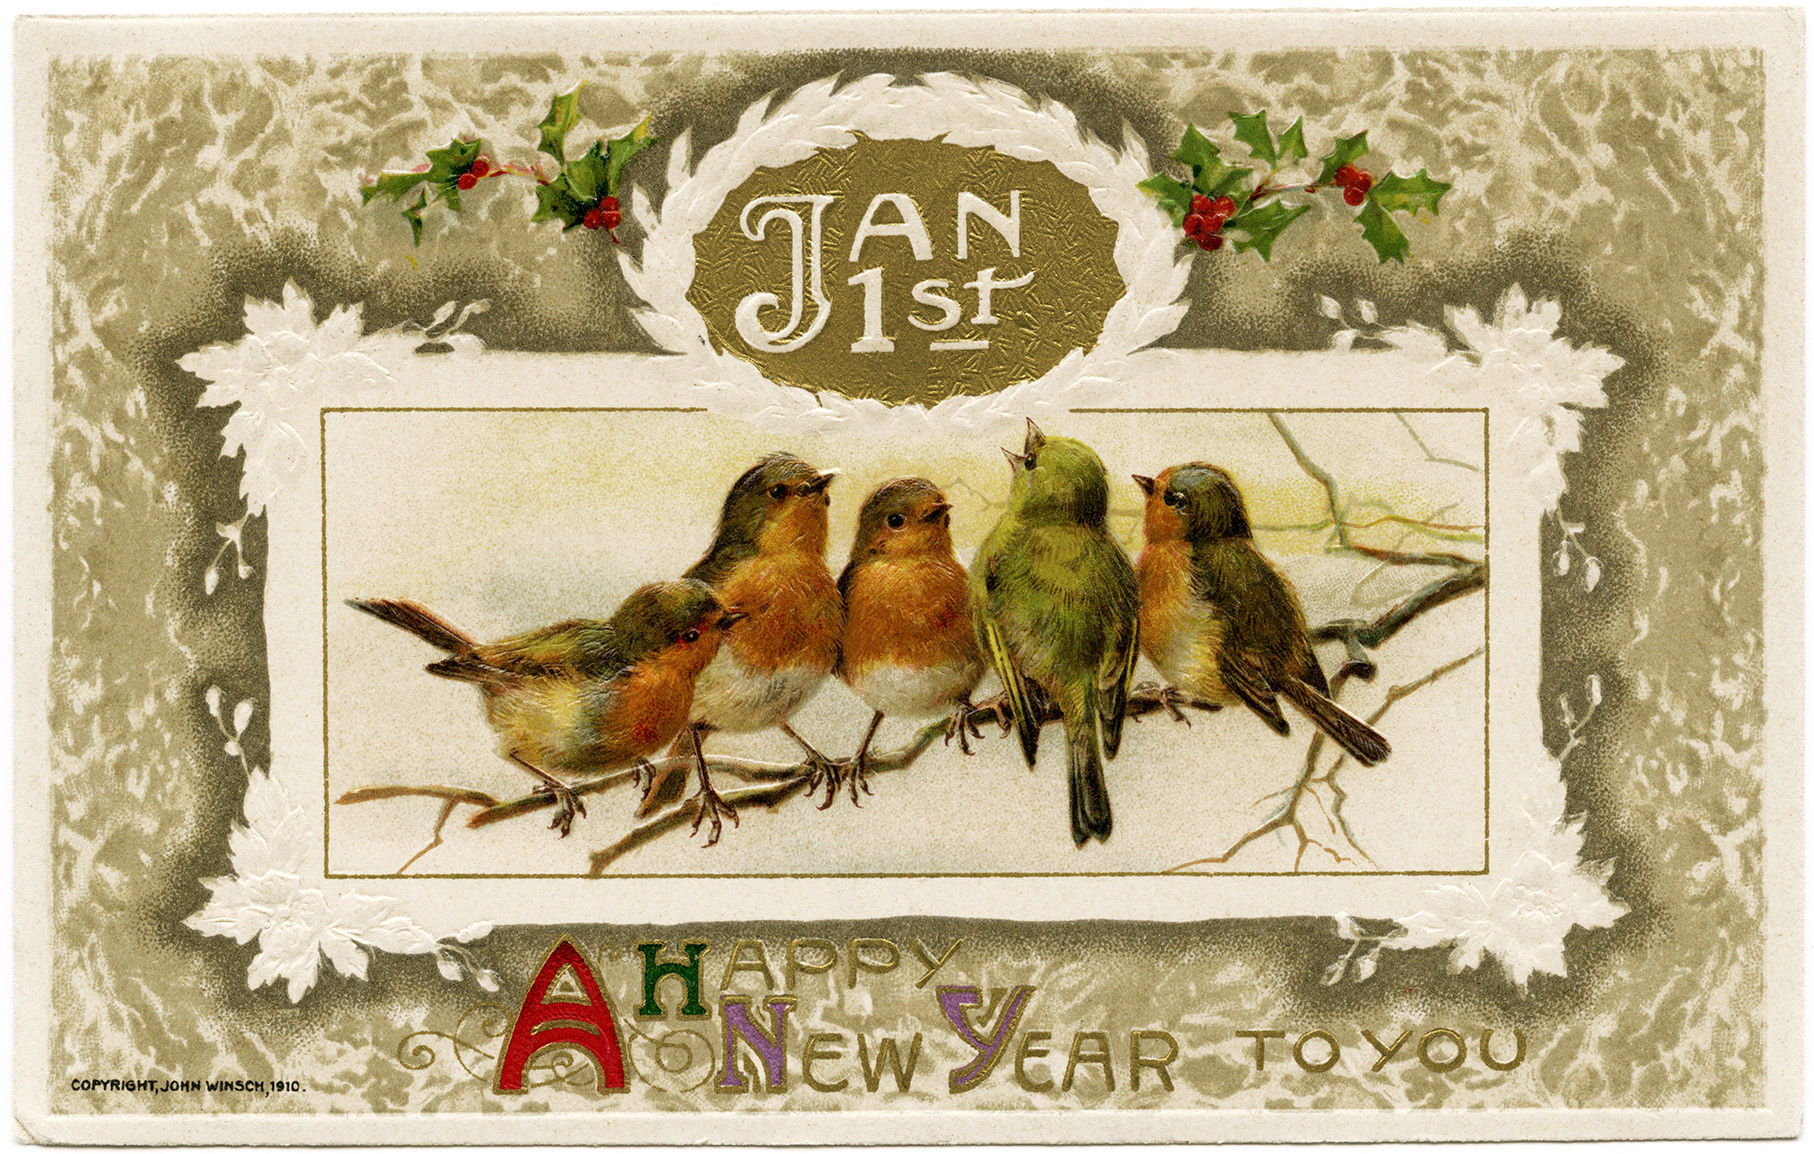 john winsch birds new year postcard old design shop blog